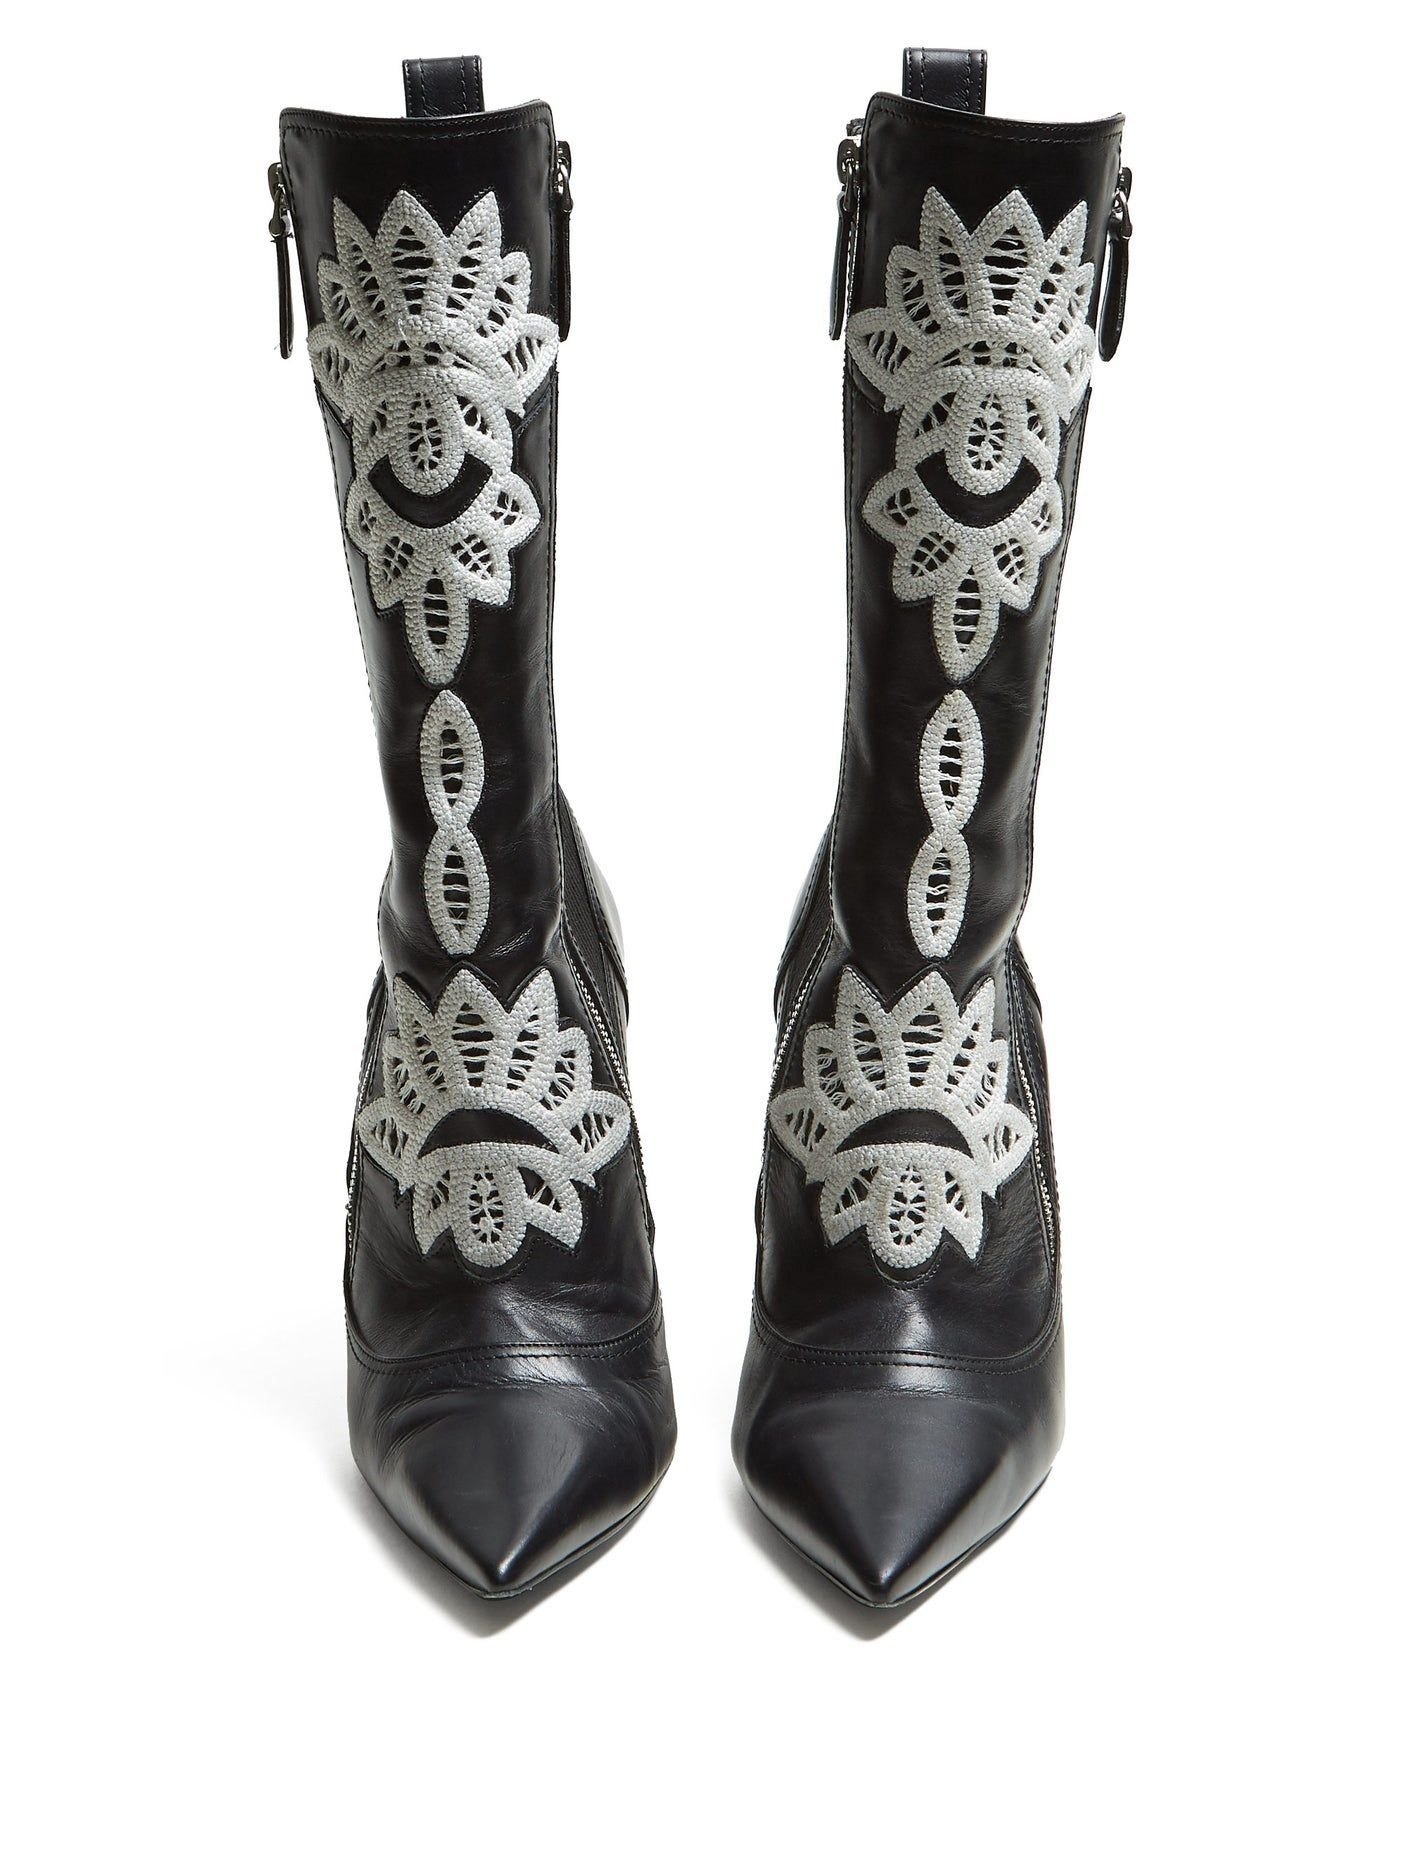 Lyst - Alexander Mcqueen Leather Embroidered Velvet Laceup